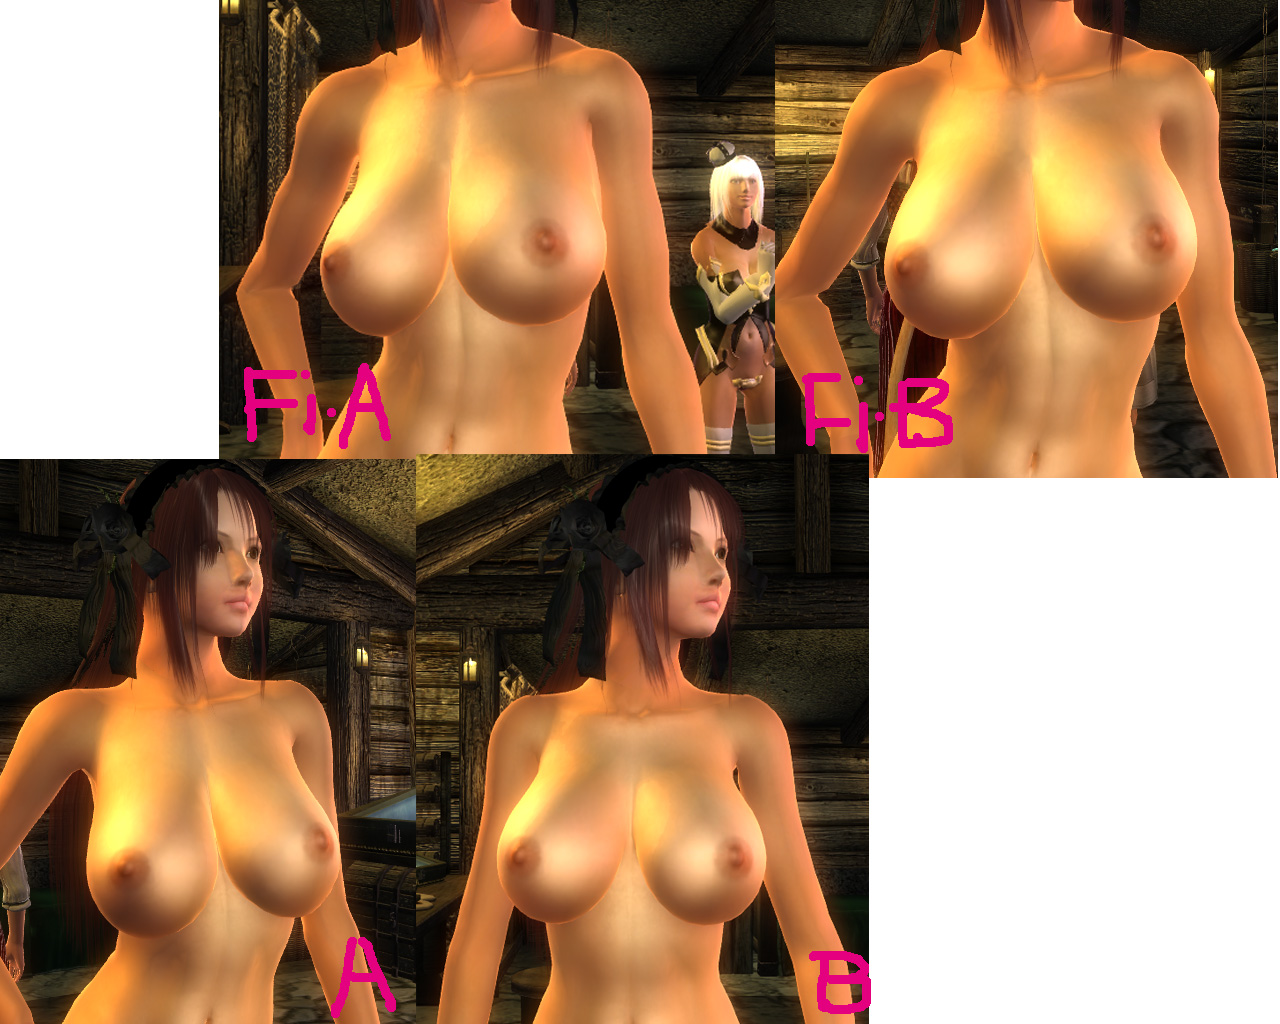 Oblivion adult mod youtube sex tube